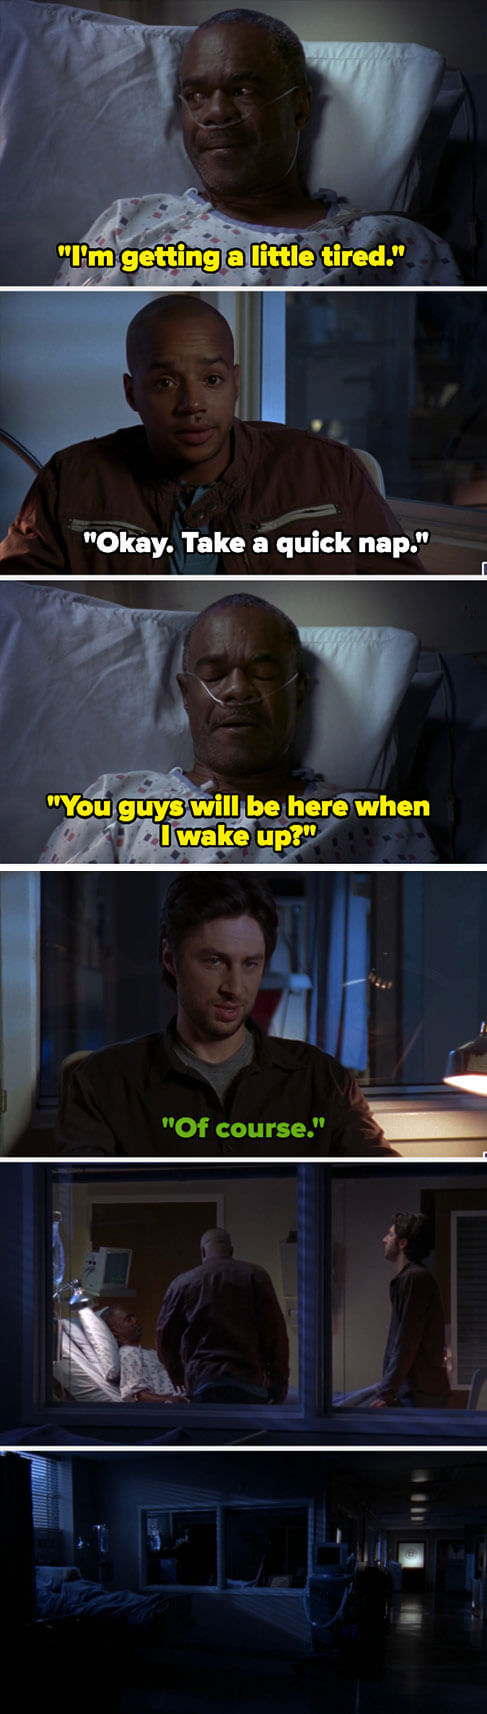 George says he's tired, and Turk tells him to sleep. George asks if they'll be there when he wakes up, and JD says they will —but then he dies